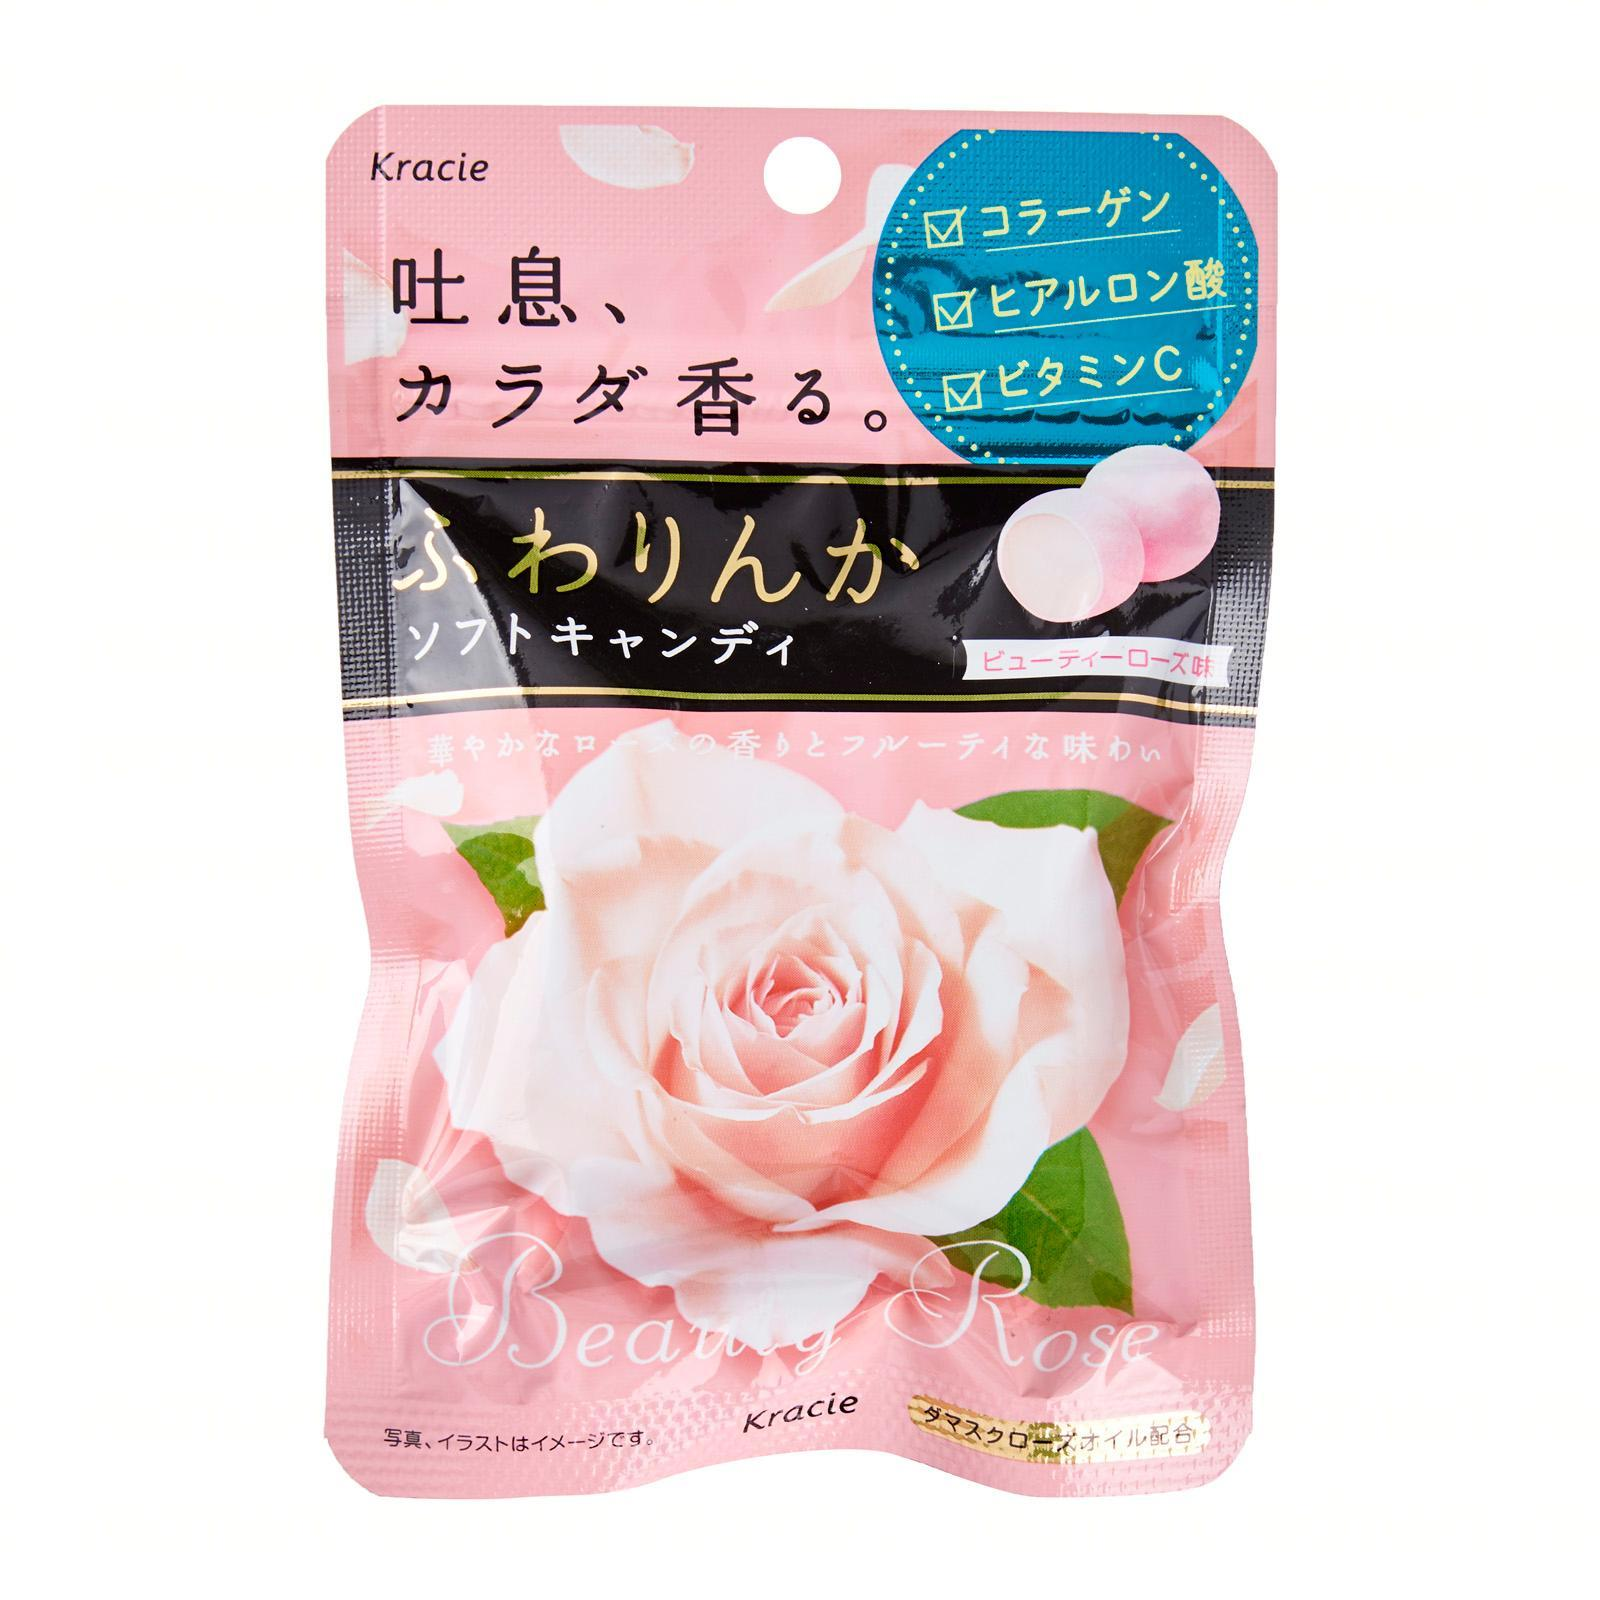 Kracie Softly N Or Soft C Beauty Rose By Redmart.